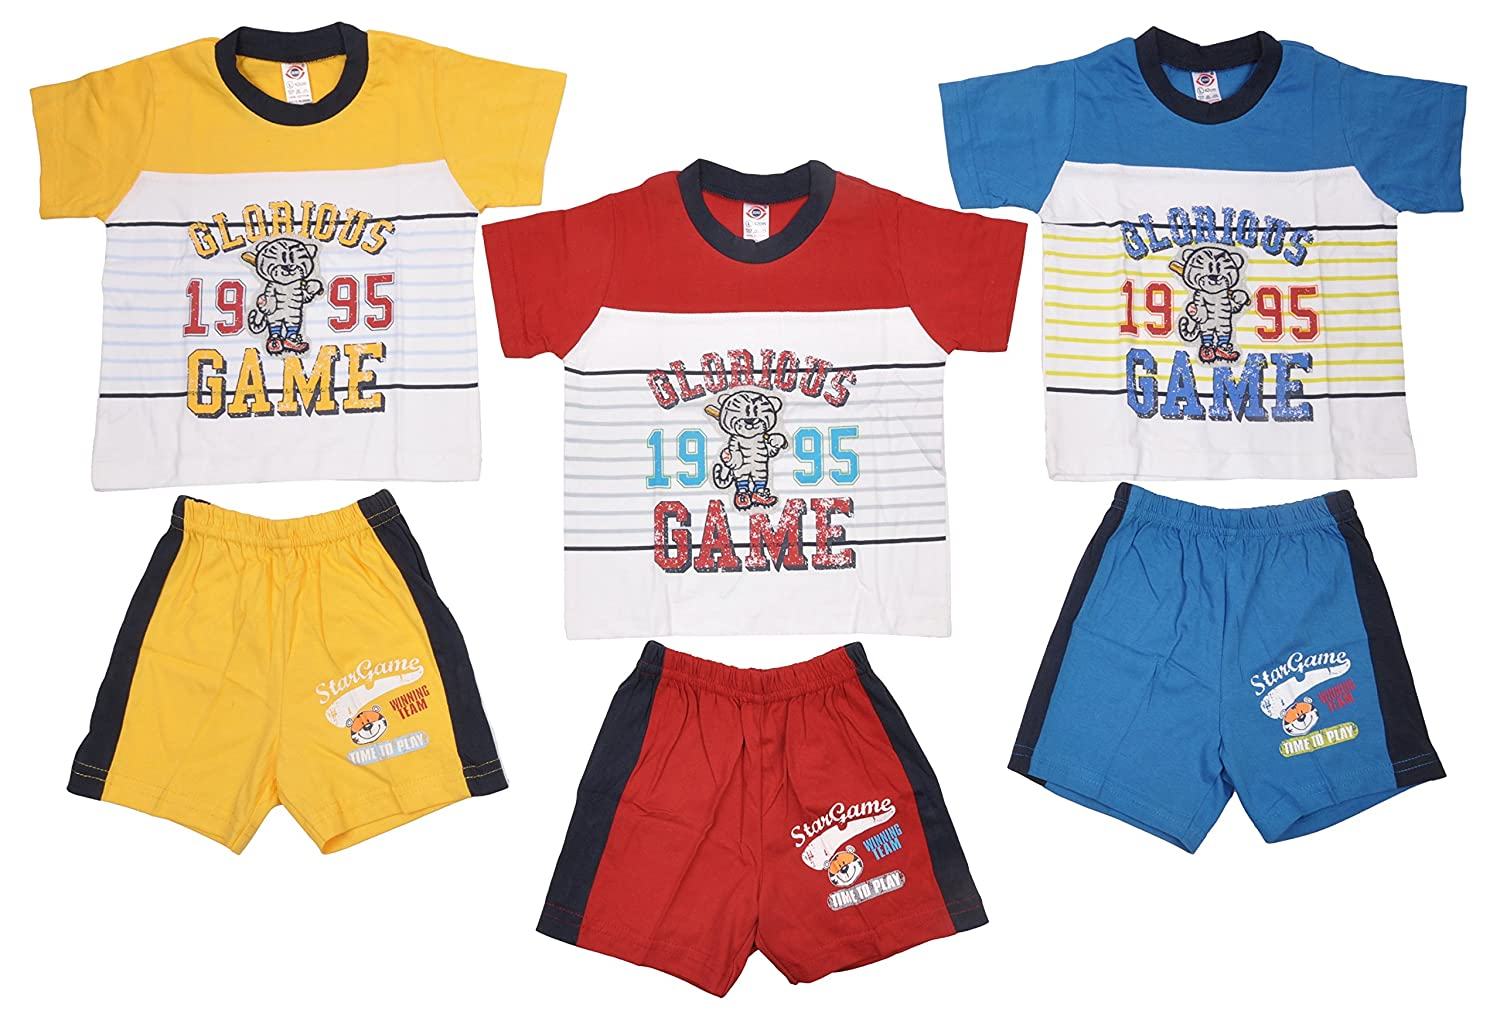 01fb08d1cf2d4 Zero Boy's Cotton Half Sleeve 3 T-Shirts & 3 Half-Pants Clothing ...